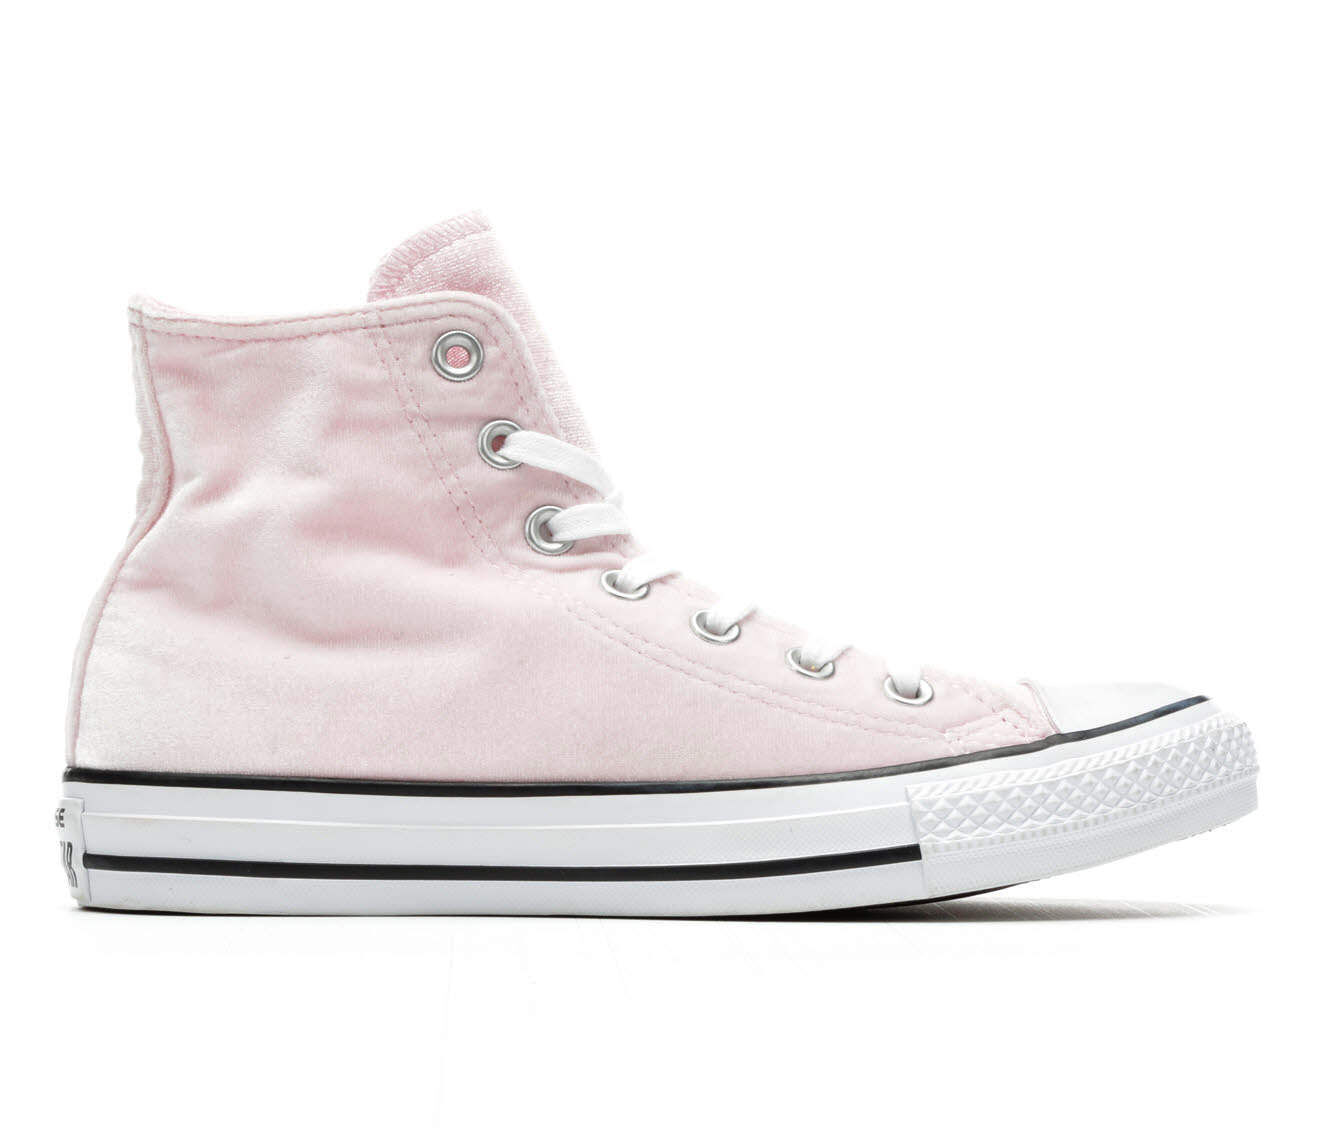 Chuck Taylor All Star Velvet Hi Top Trainers In Pink - Pink Converse tTGKt